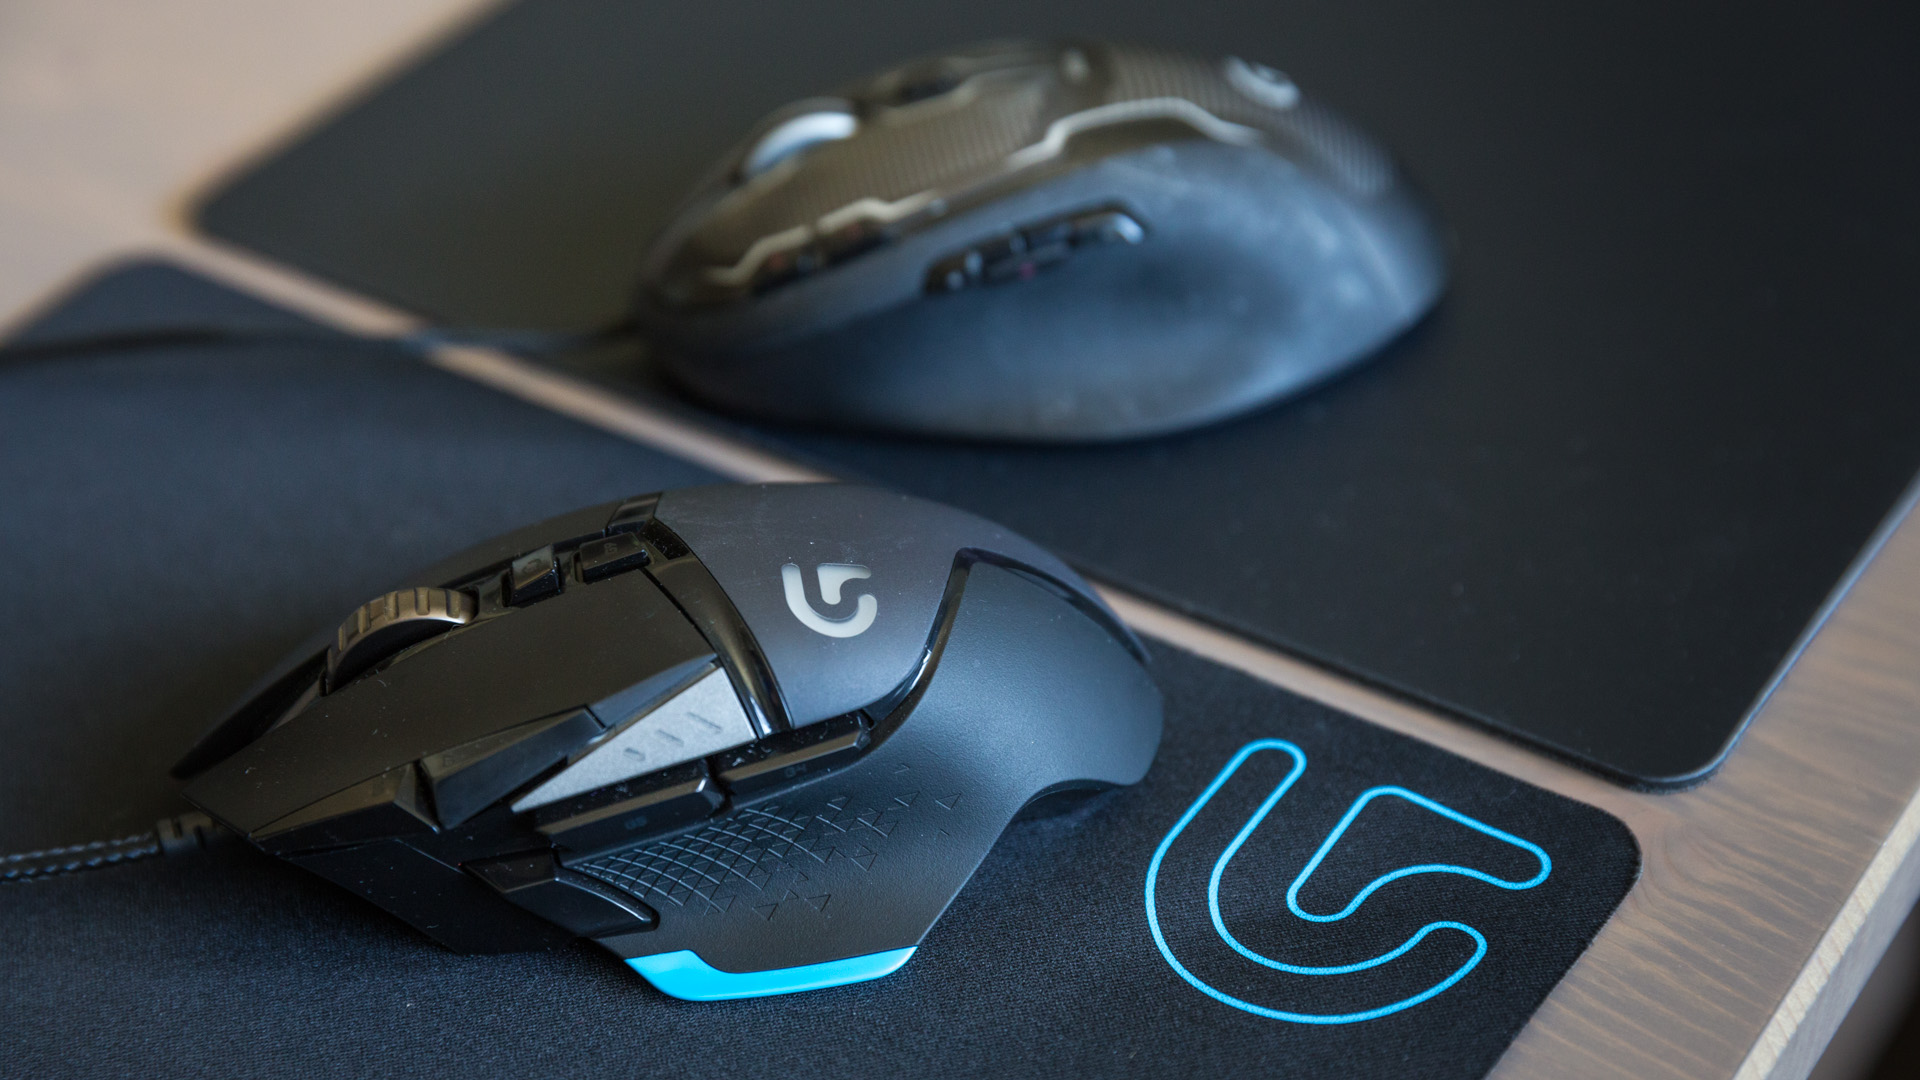 Testing: Logitech G502 Proteus Core Gaming Mouse - Tested